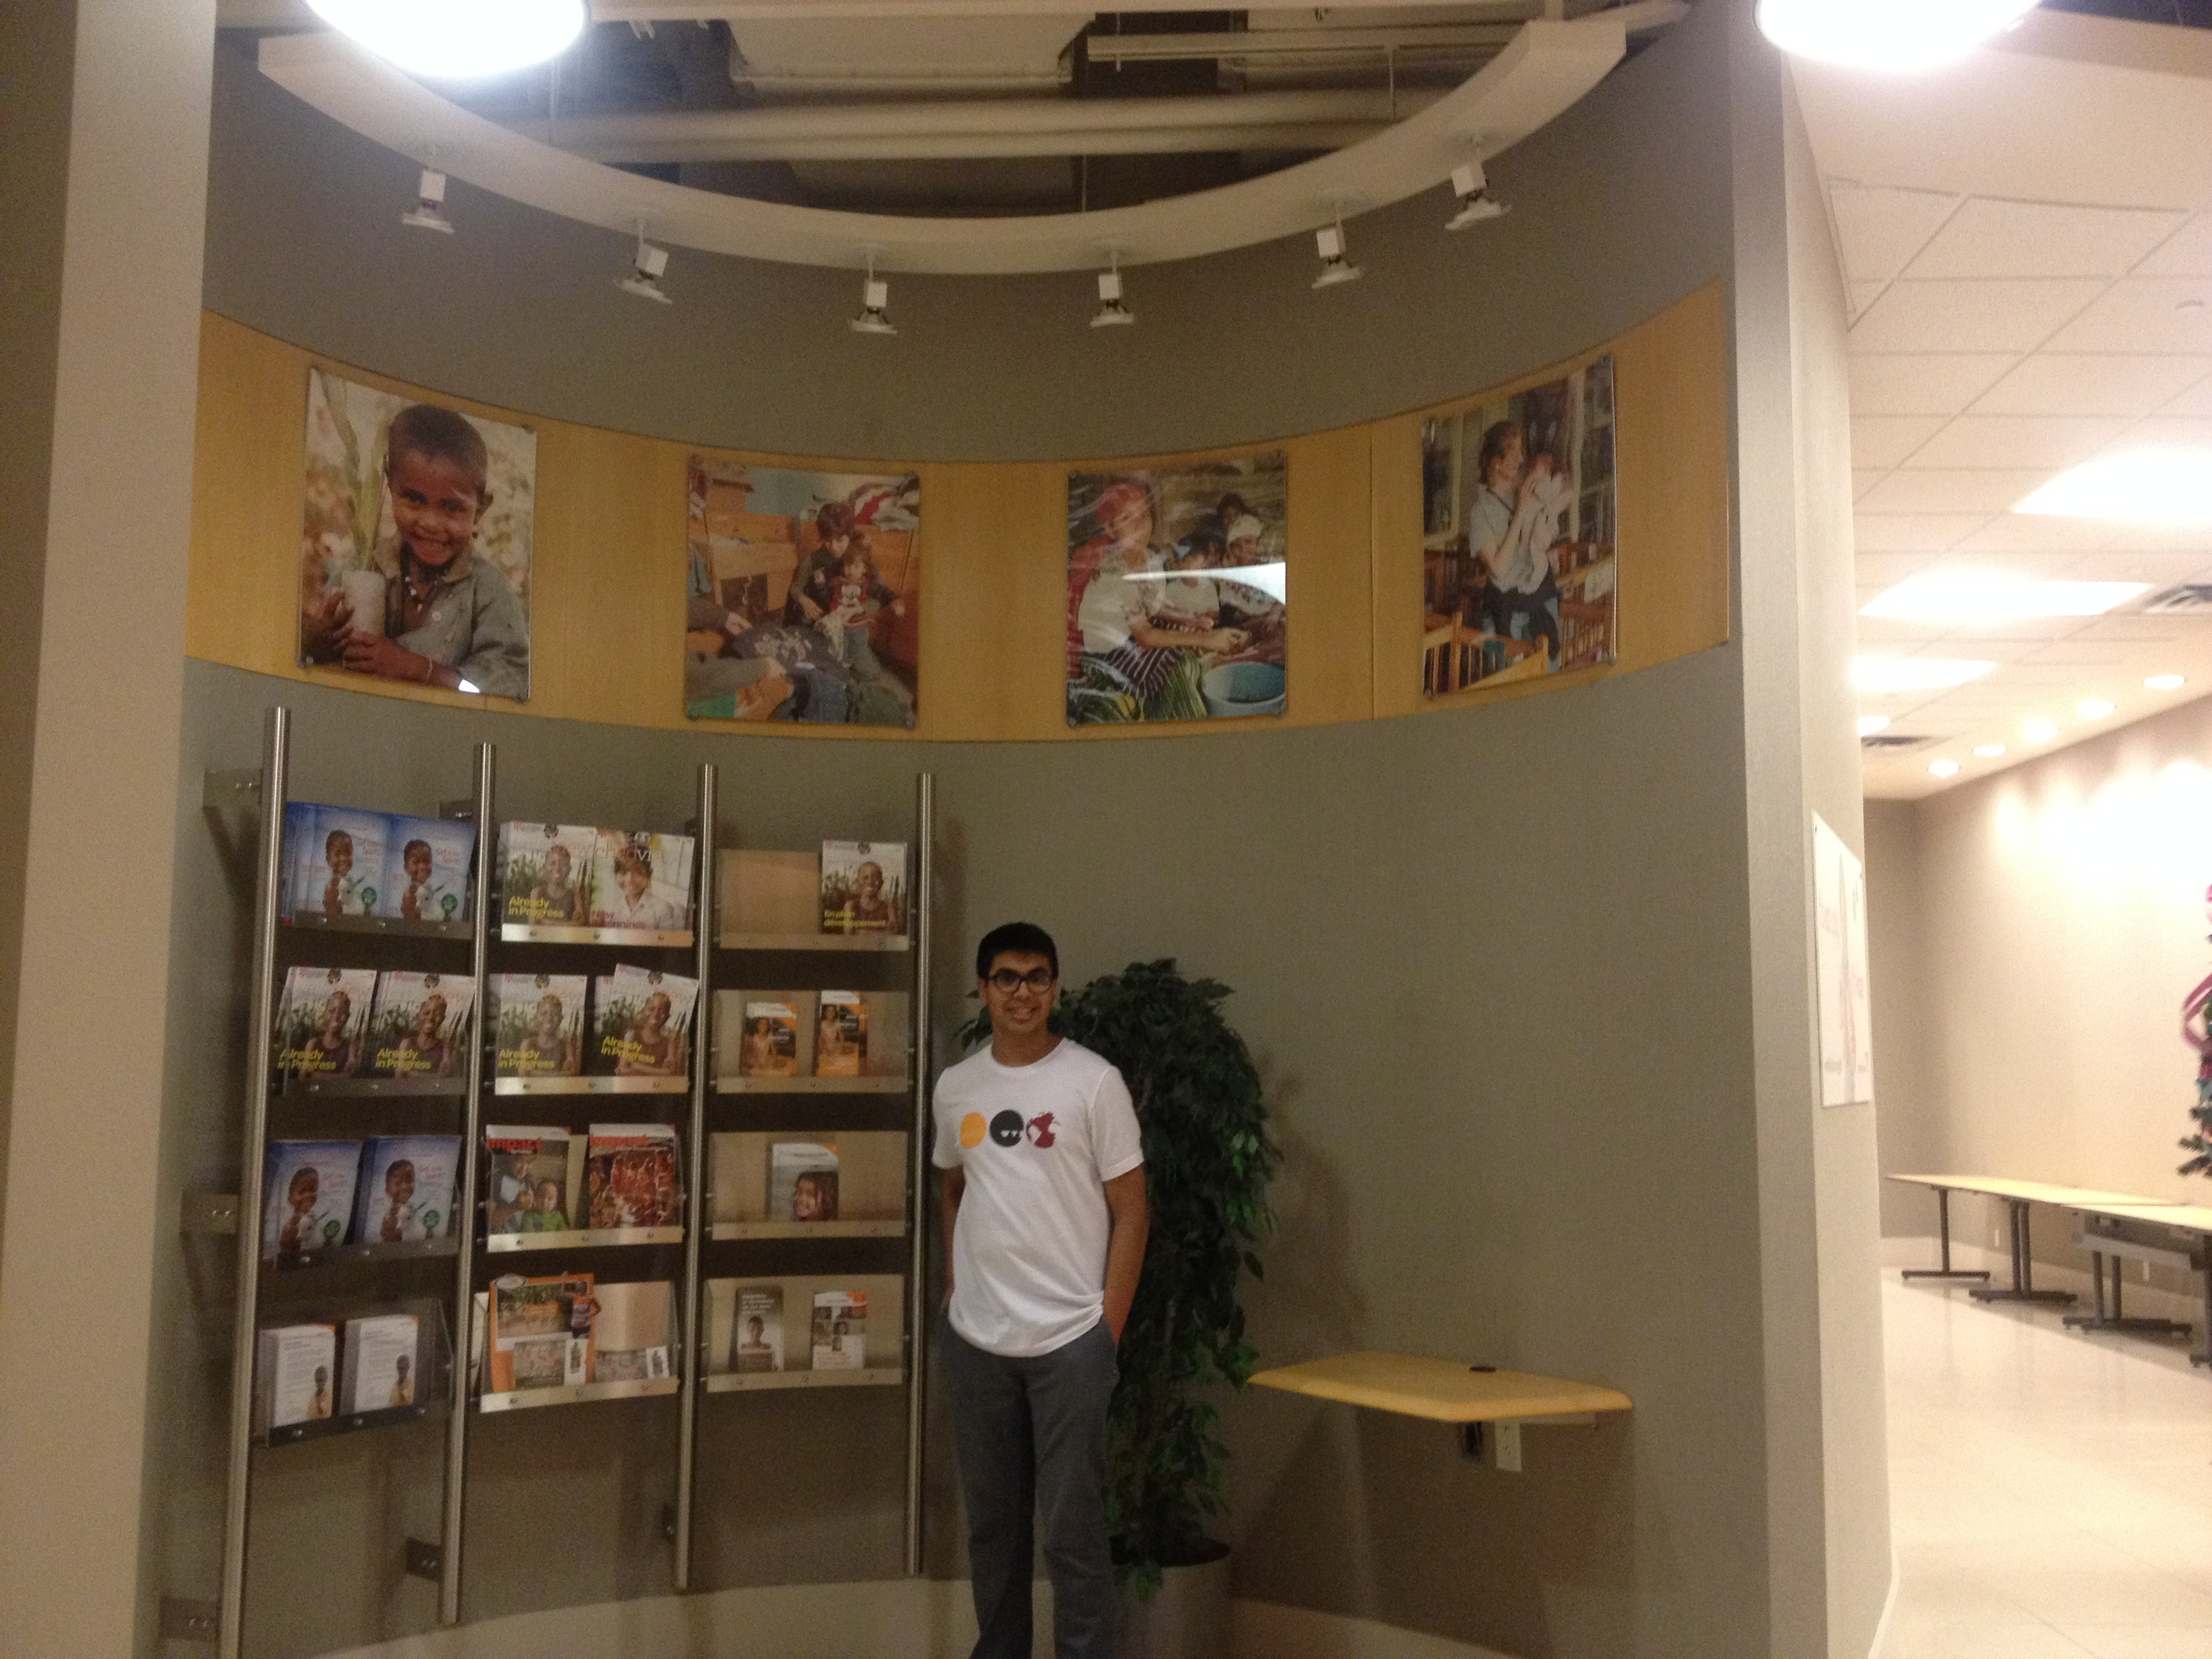 Harnoor Gill is volunteering at the World Vision Canada headquarers in Mississauga, Ontario